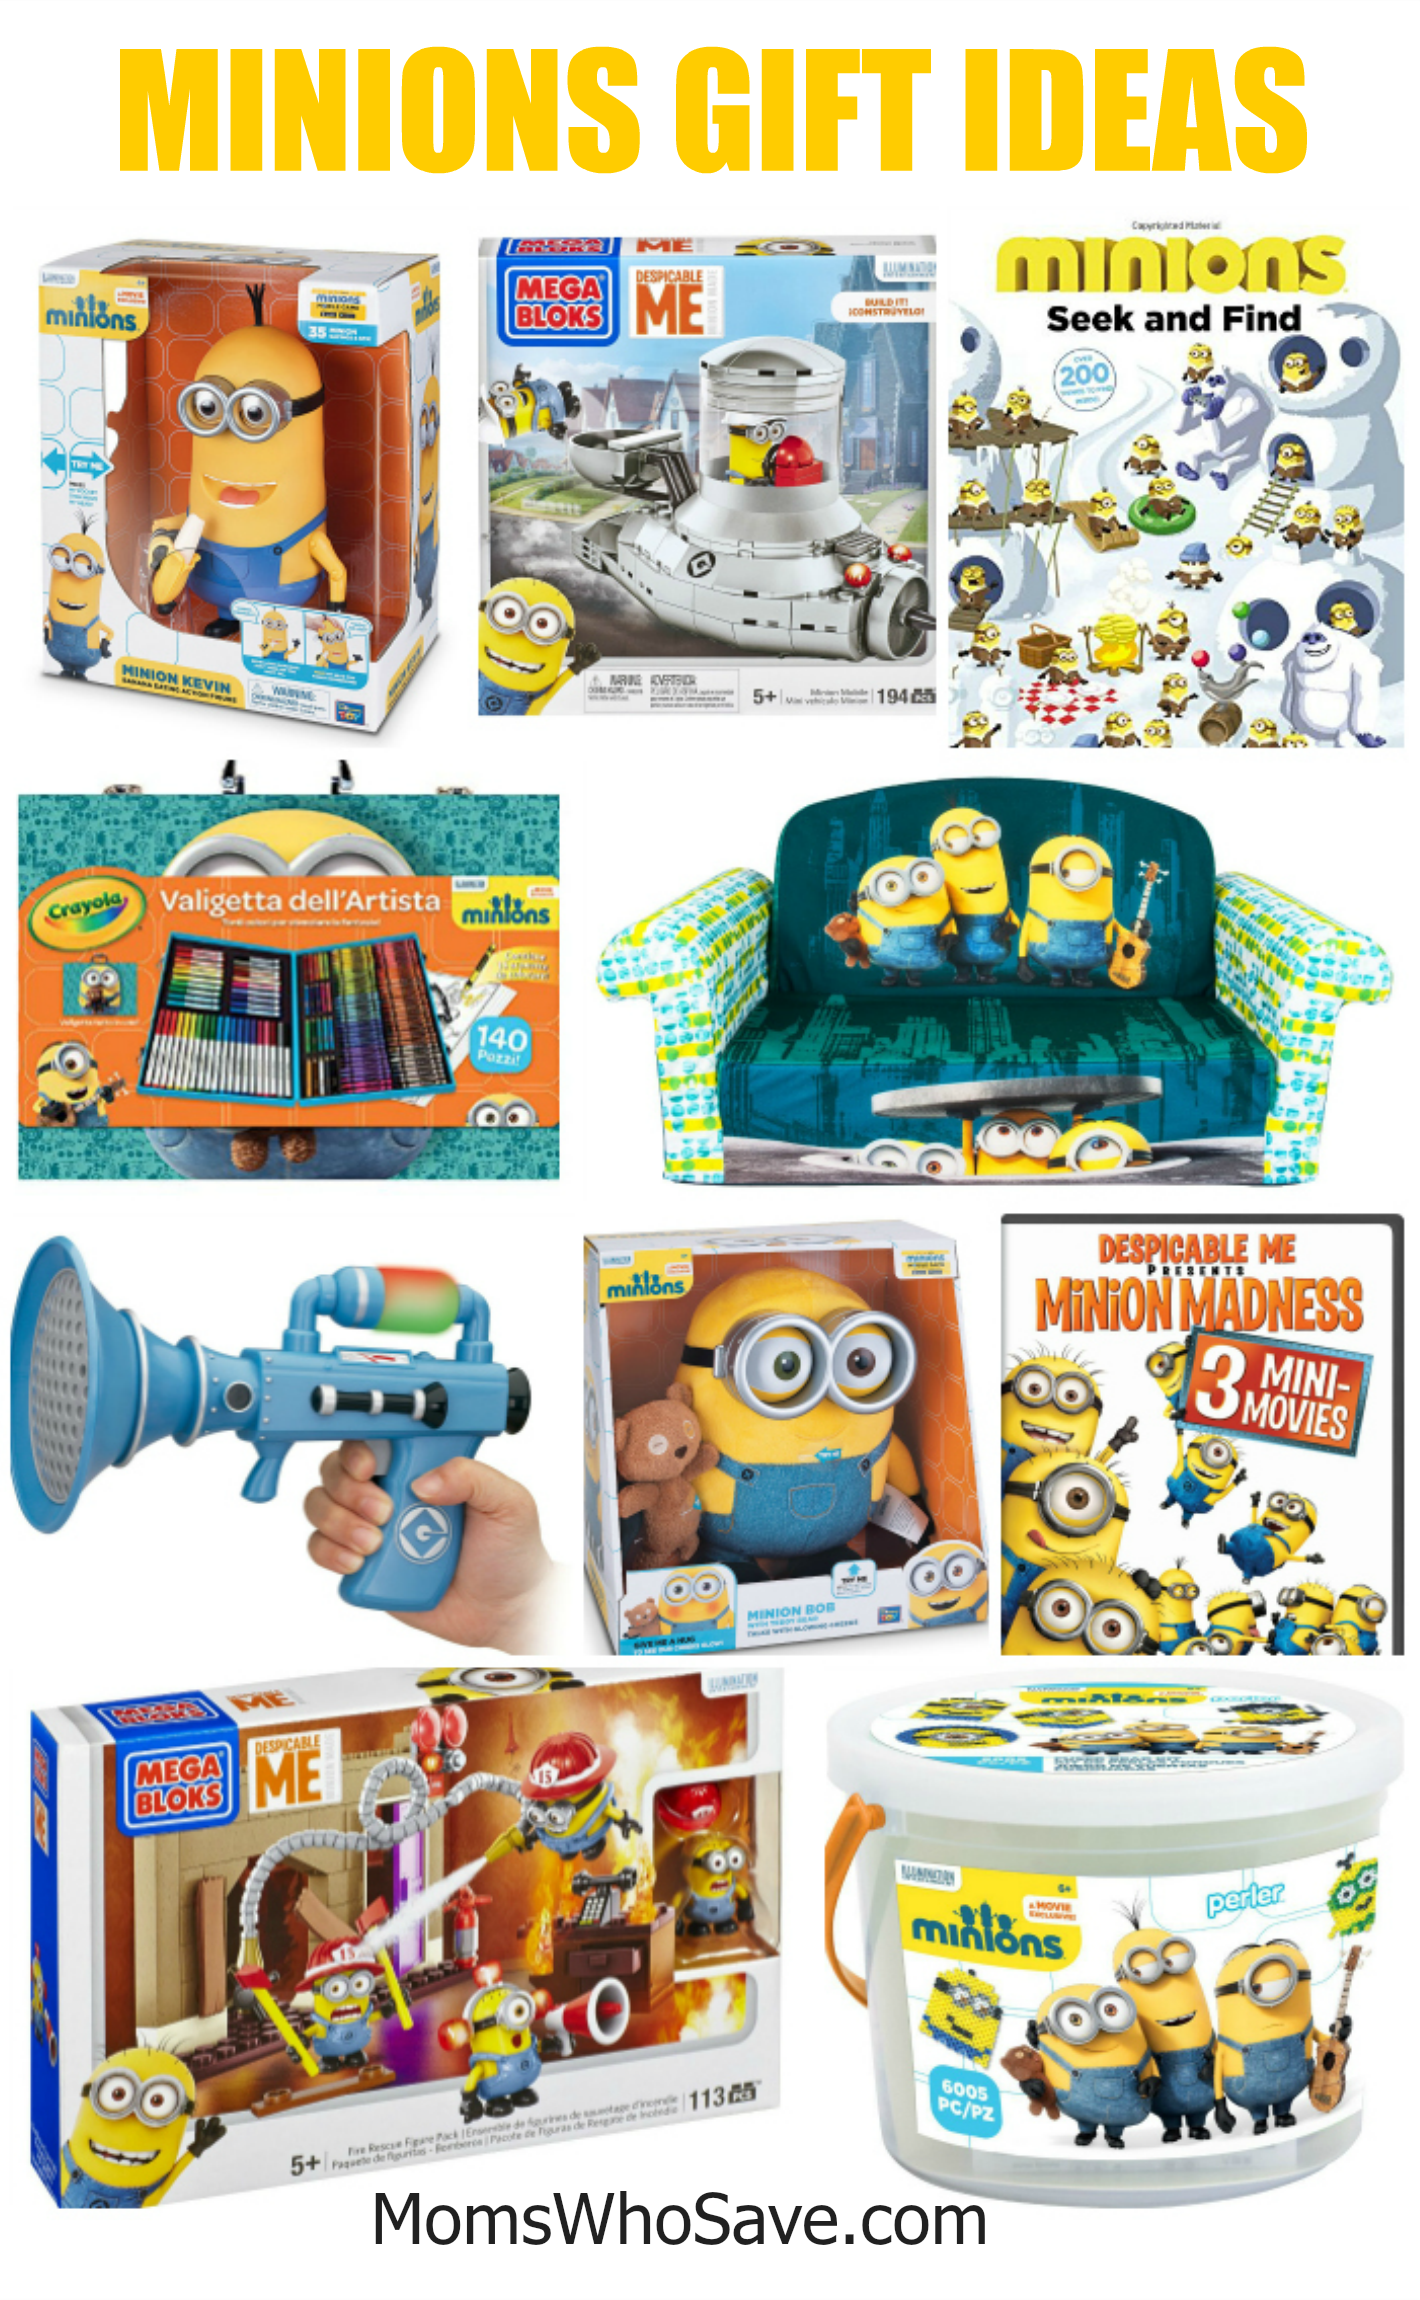 45 Minions Gift Ideas For Despicable Me Fans Momswhosave Com Minion Gifts Minions Minion Theme